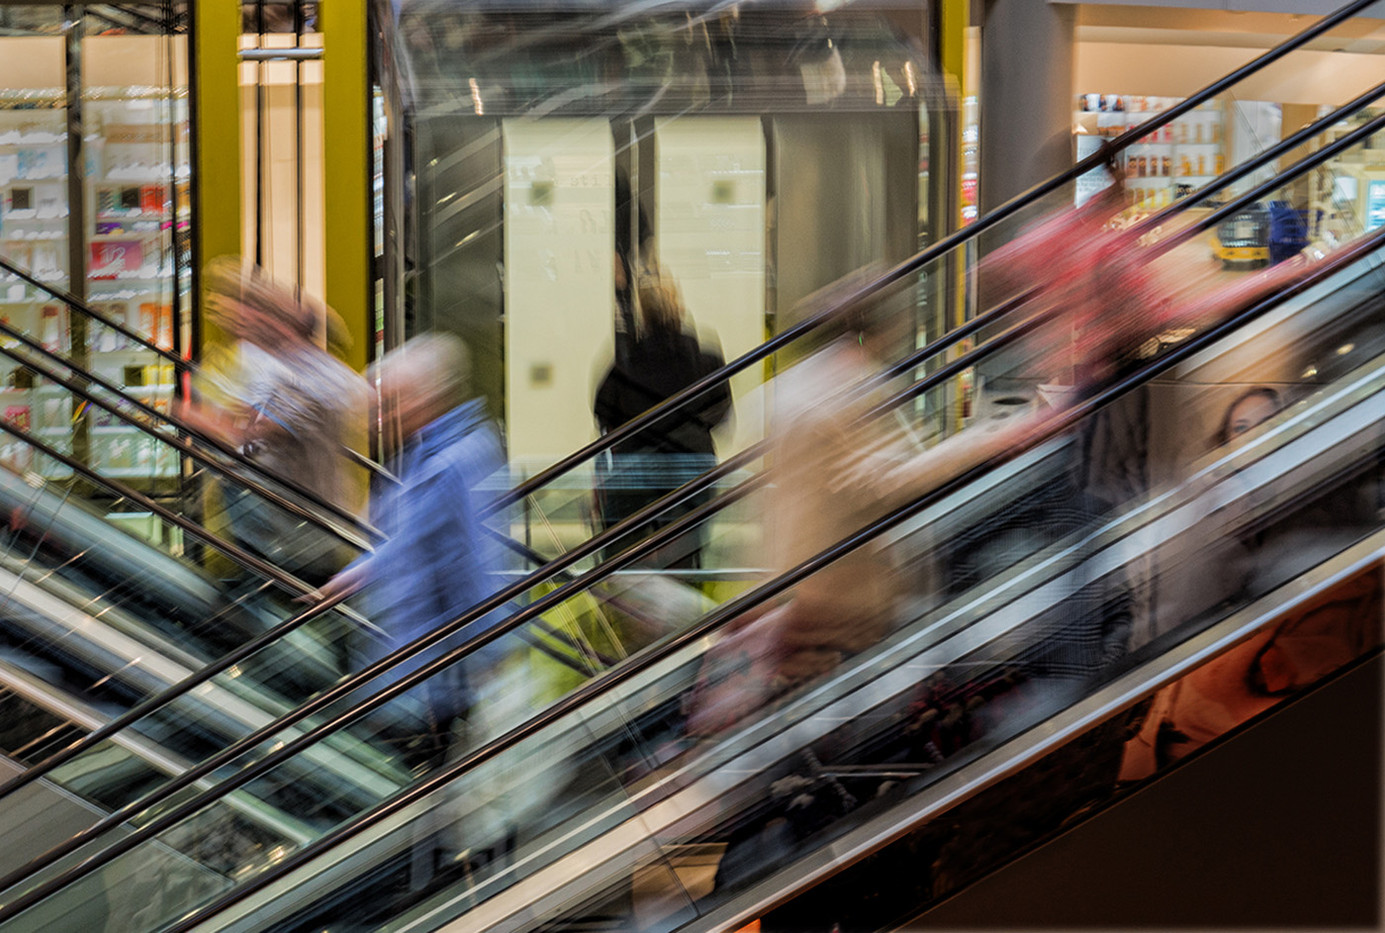 18 LIFT OR ESCALATOR by Les Welton